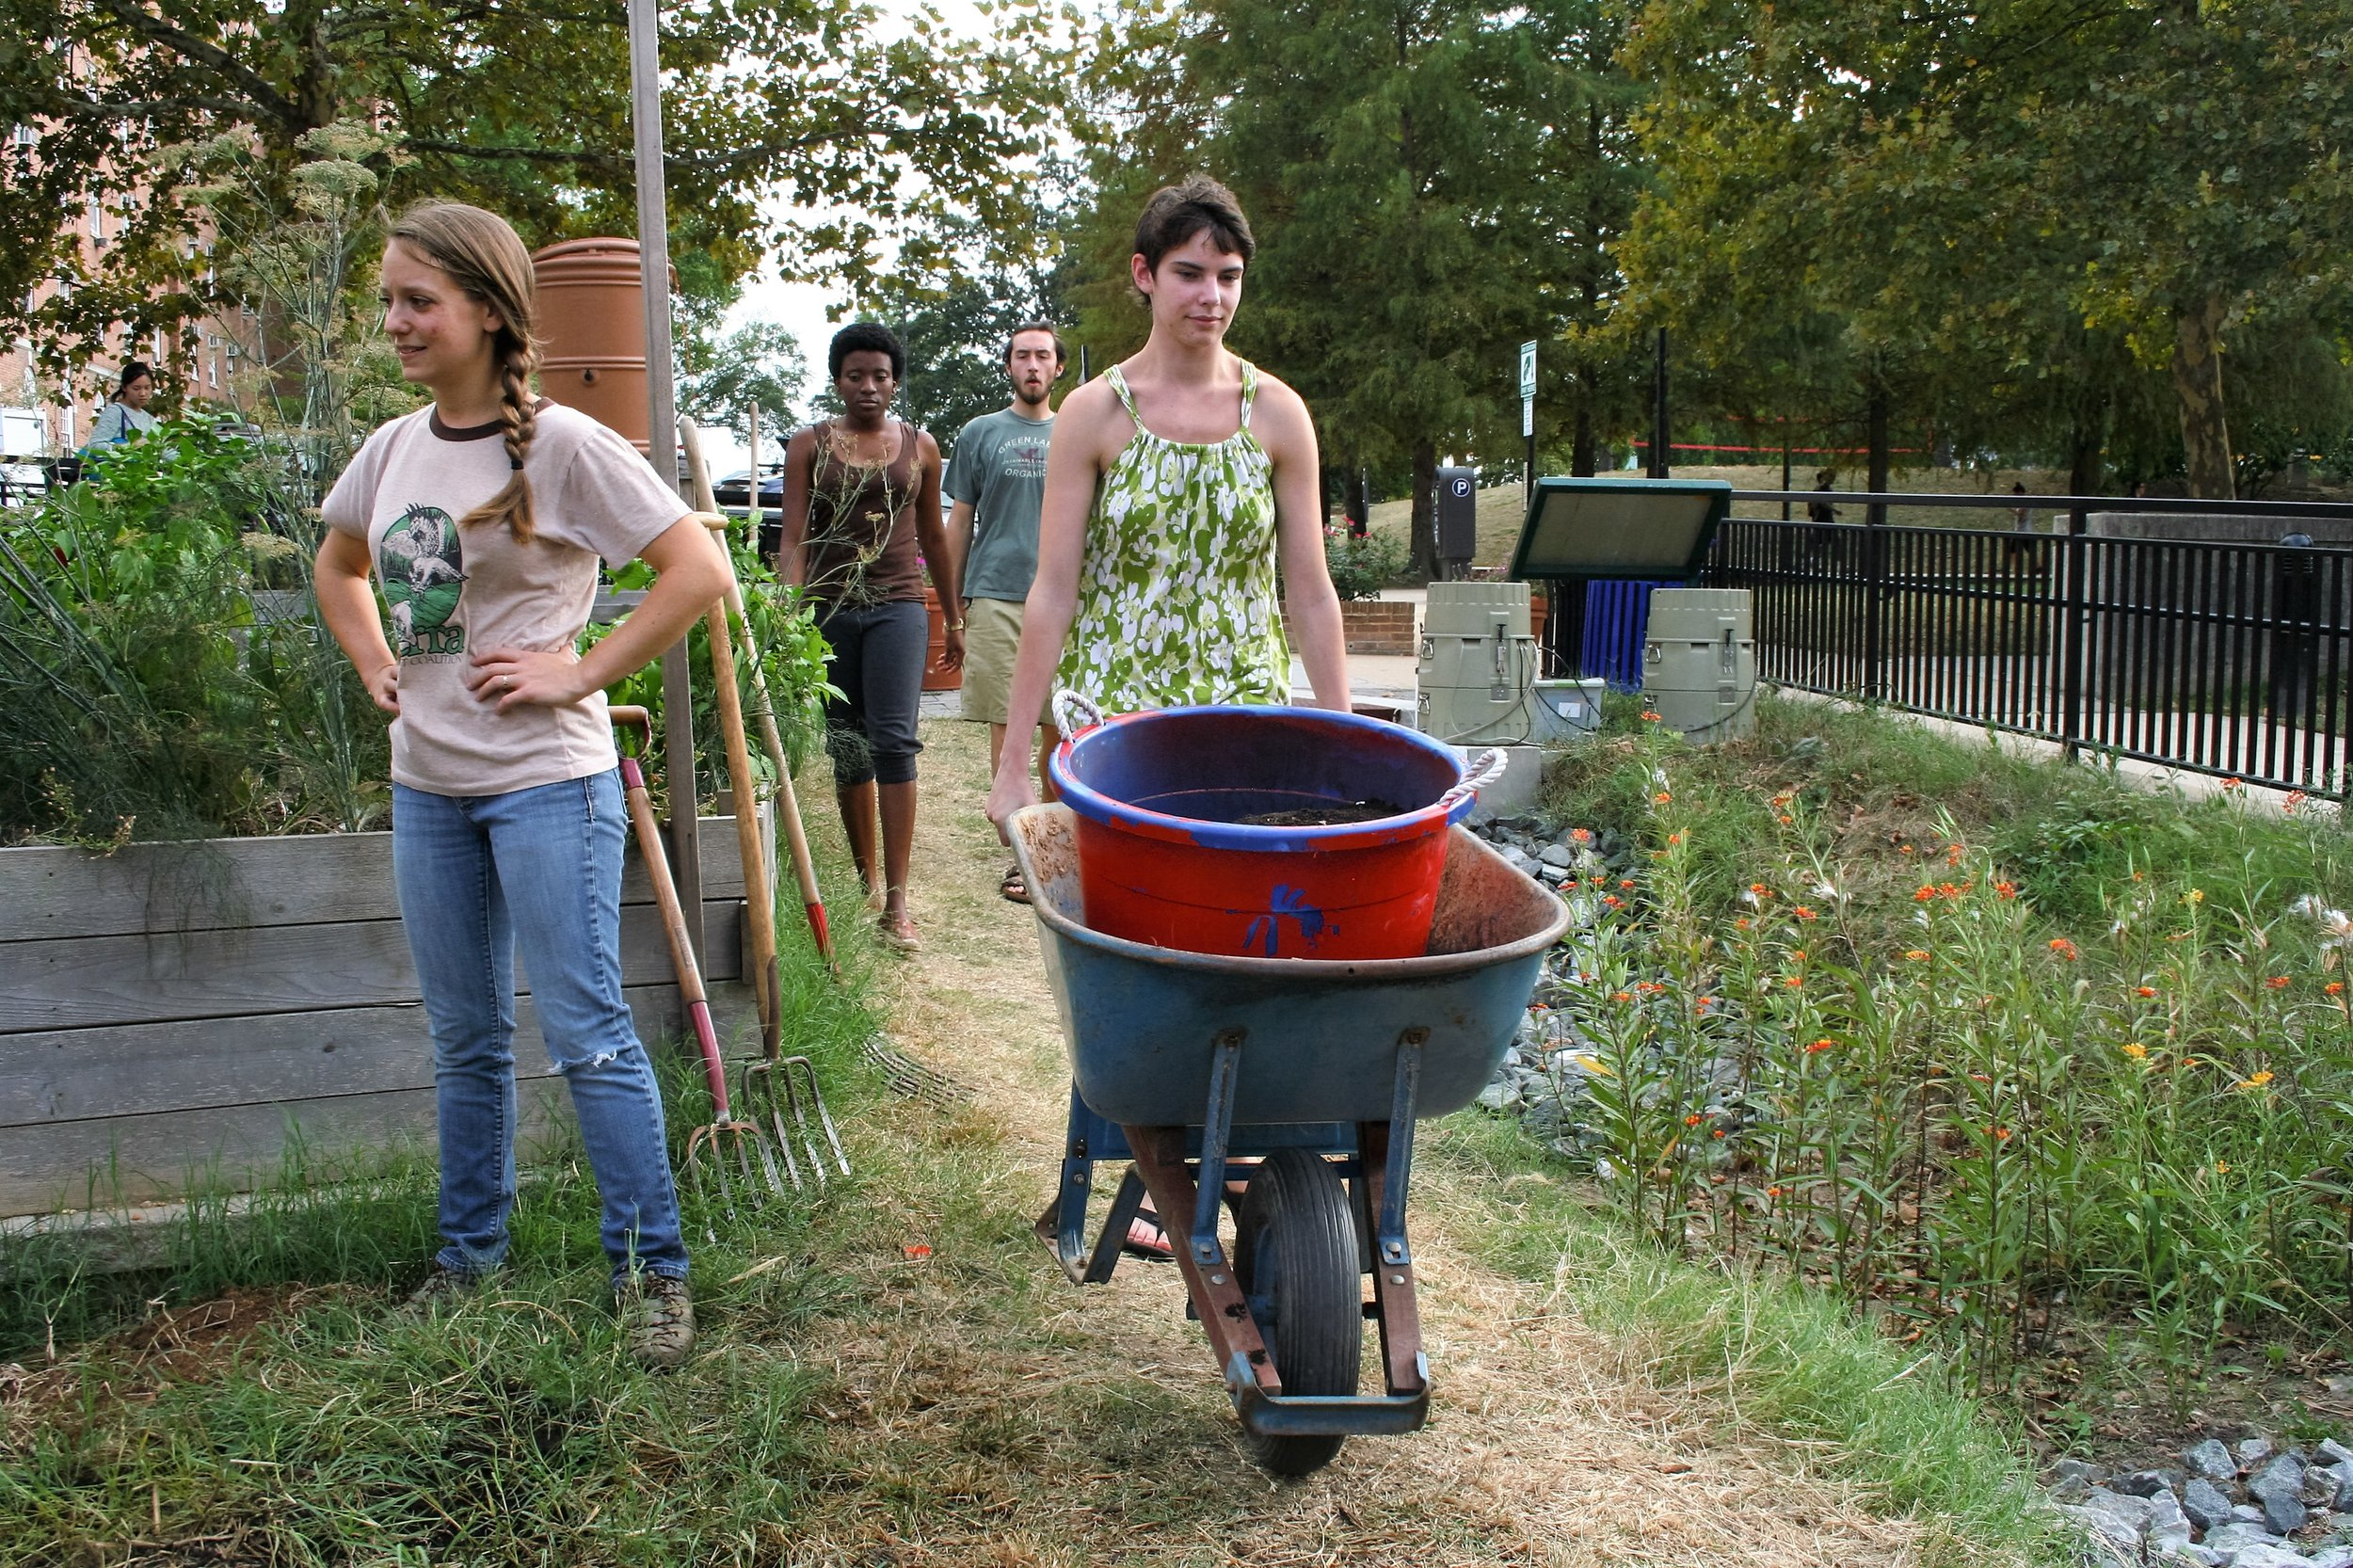 Meredith Epstein, left, the faculty adviser of the Public Health Garden and a teacher of sustainable agriculture at the University of Maryland oversees volunteers as they transport compost to the hillside of the garden on Sept. 28, 2015. Epstein said she has been with the club since 2013 and she runs all of the work hours at the garden.